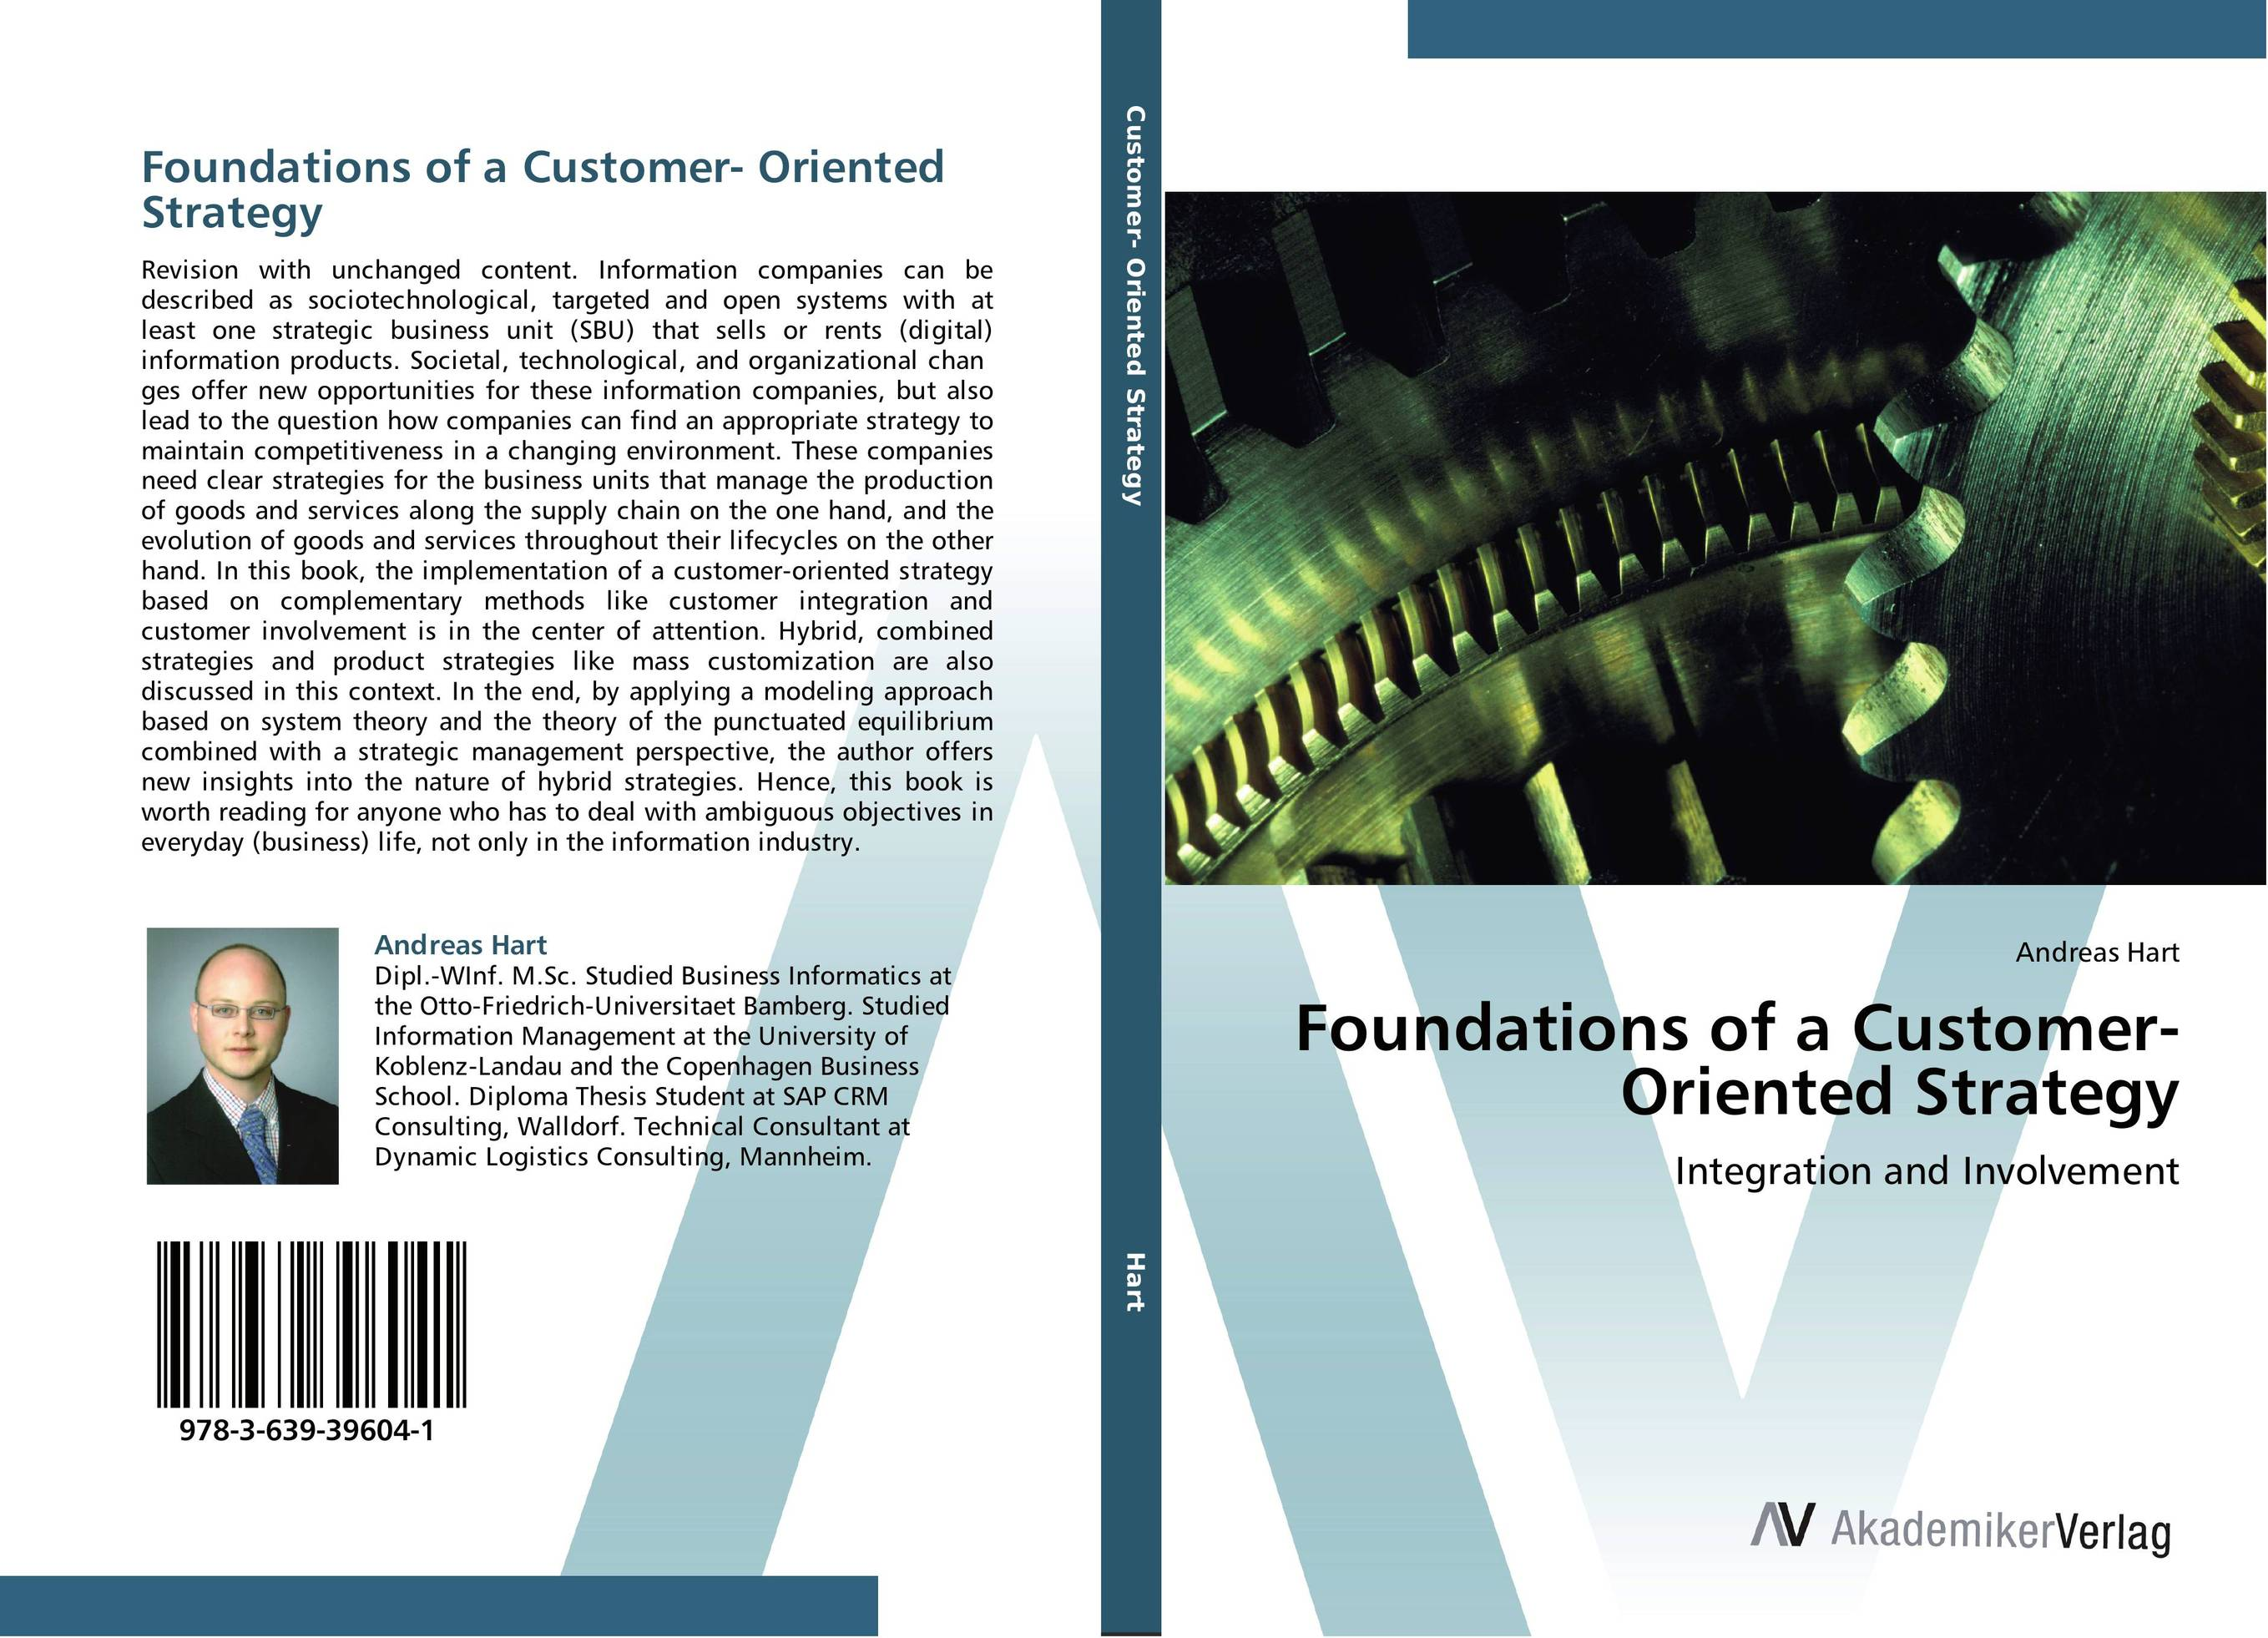 Foundations of a Customer- Oriented Strategy